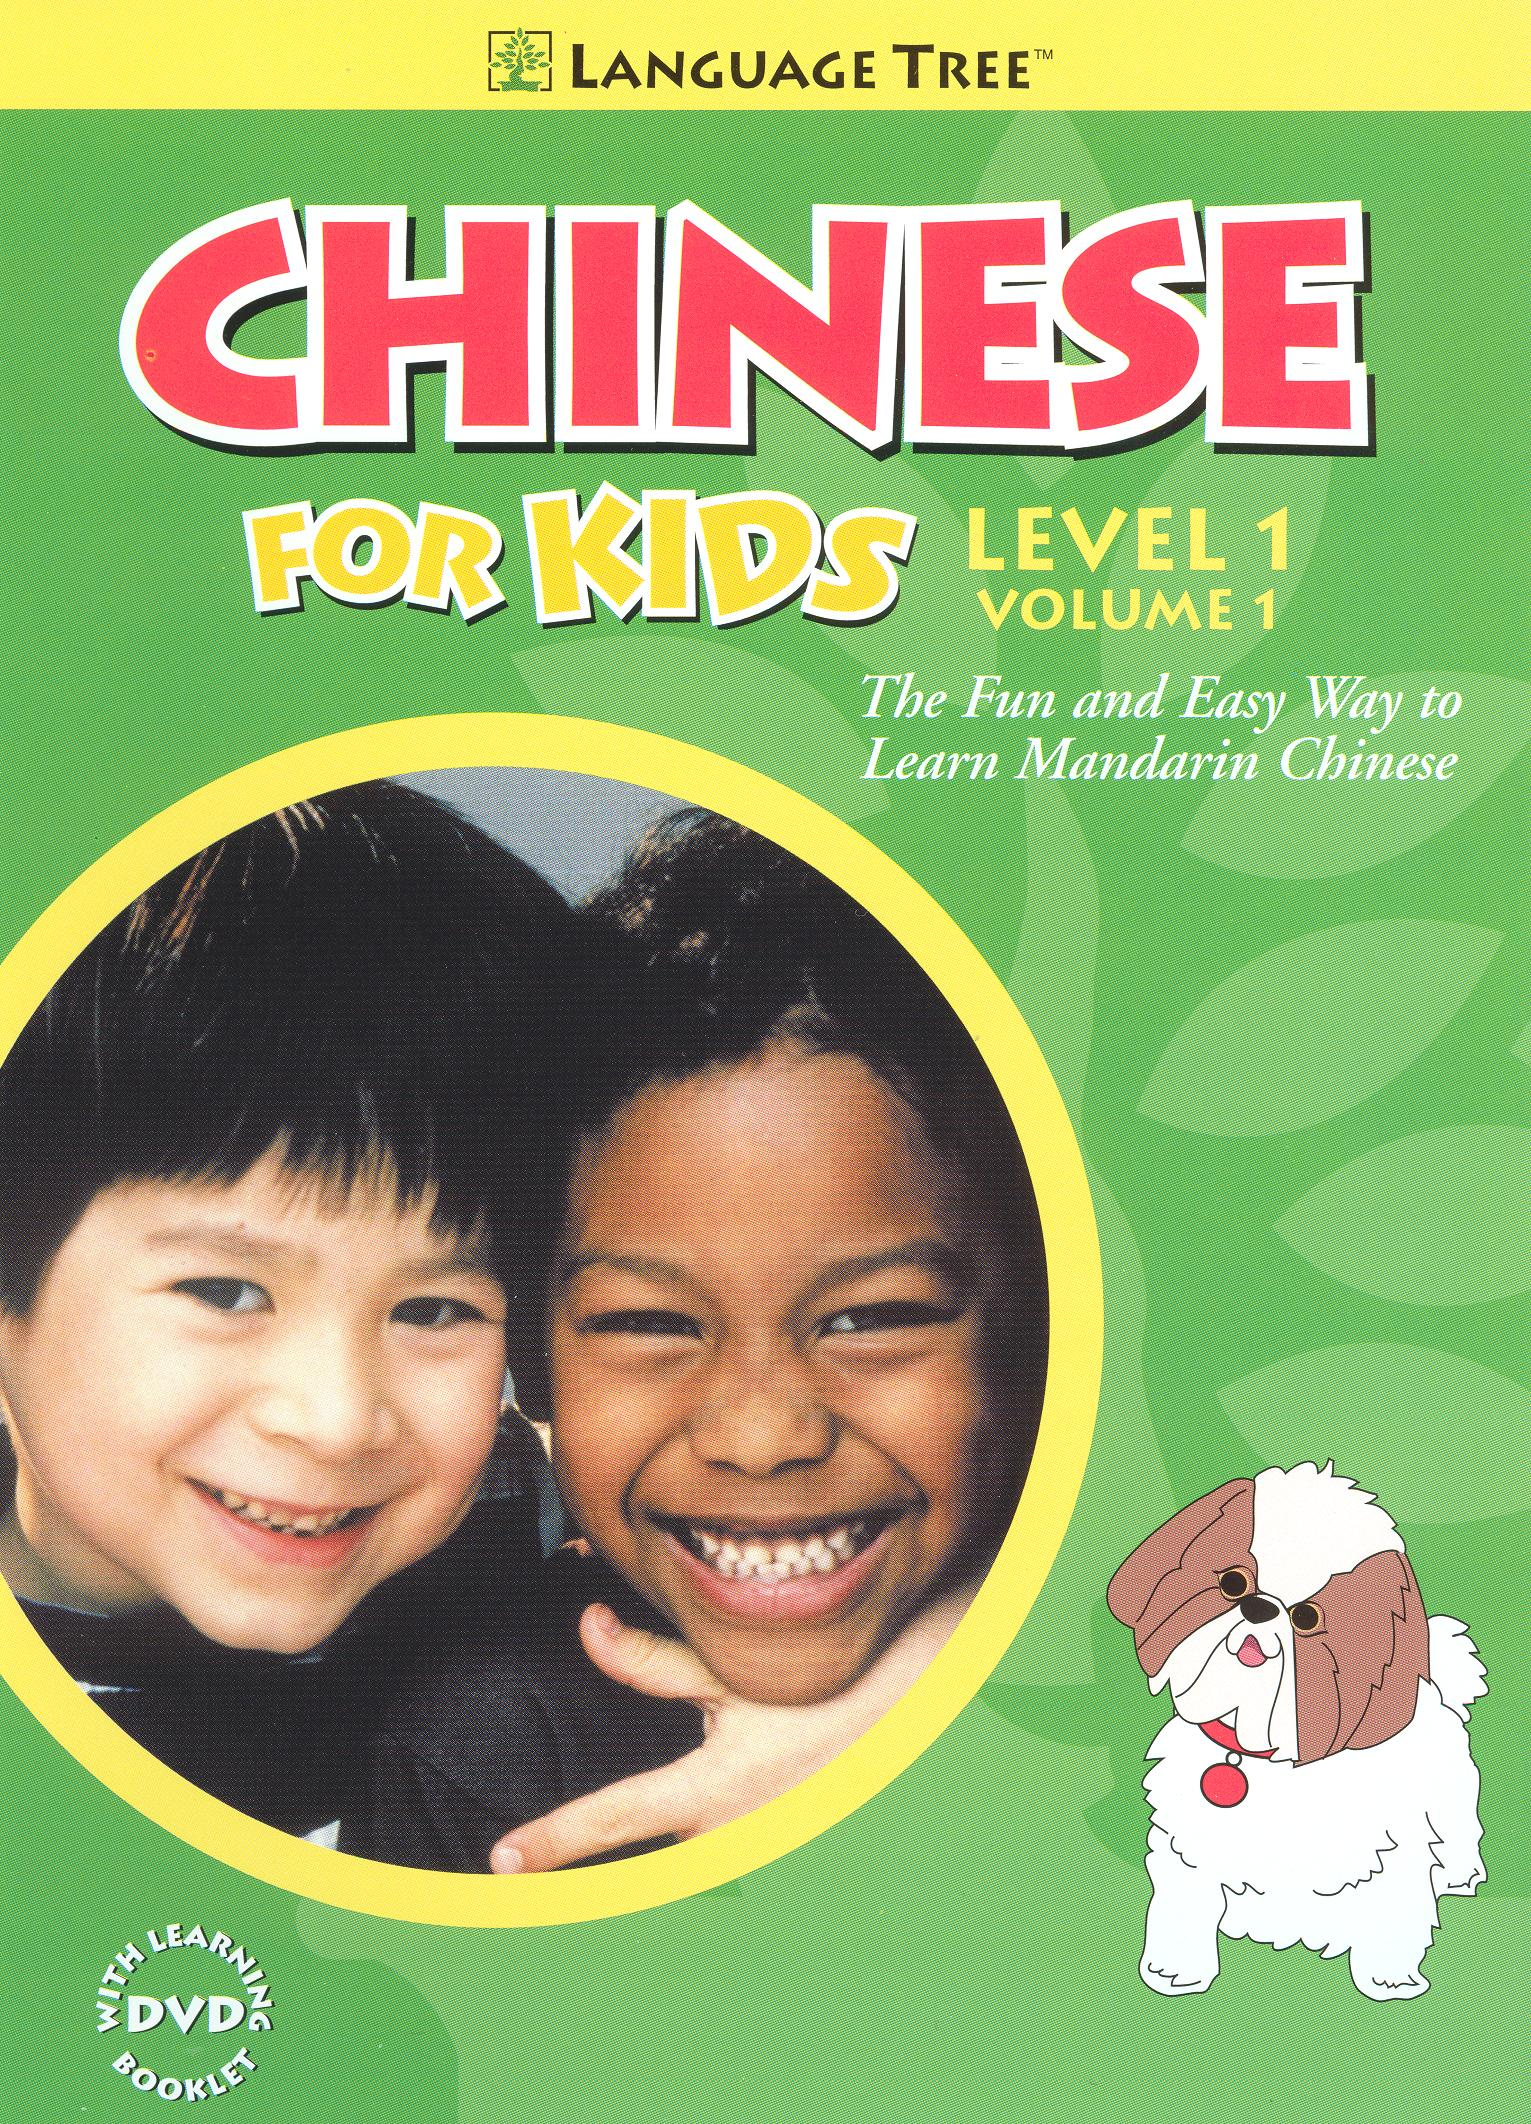 Chinese for Kids: Level 1, Vol. 1